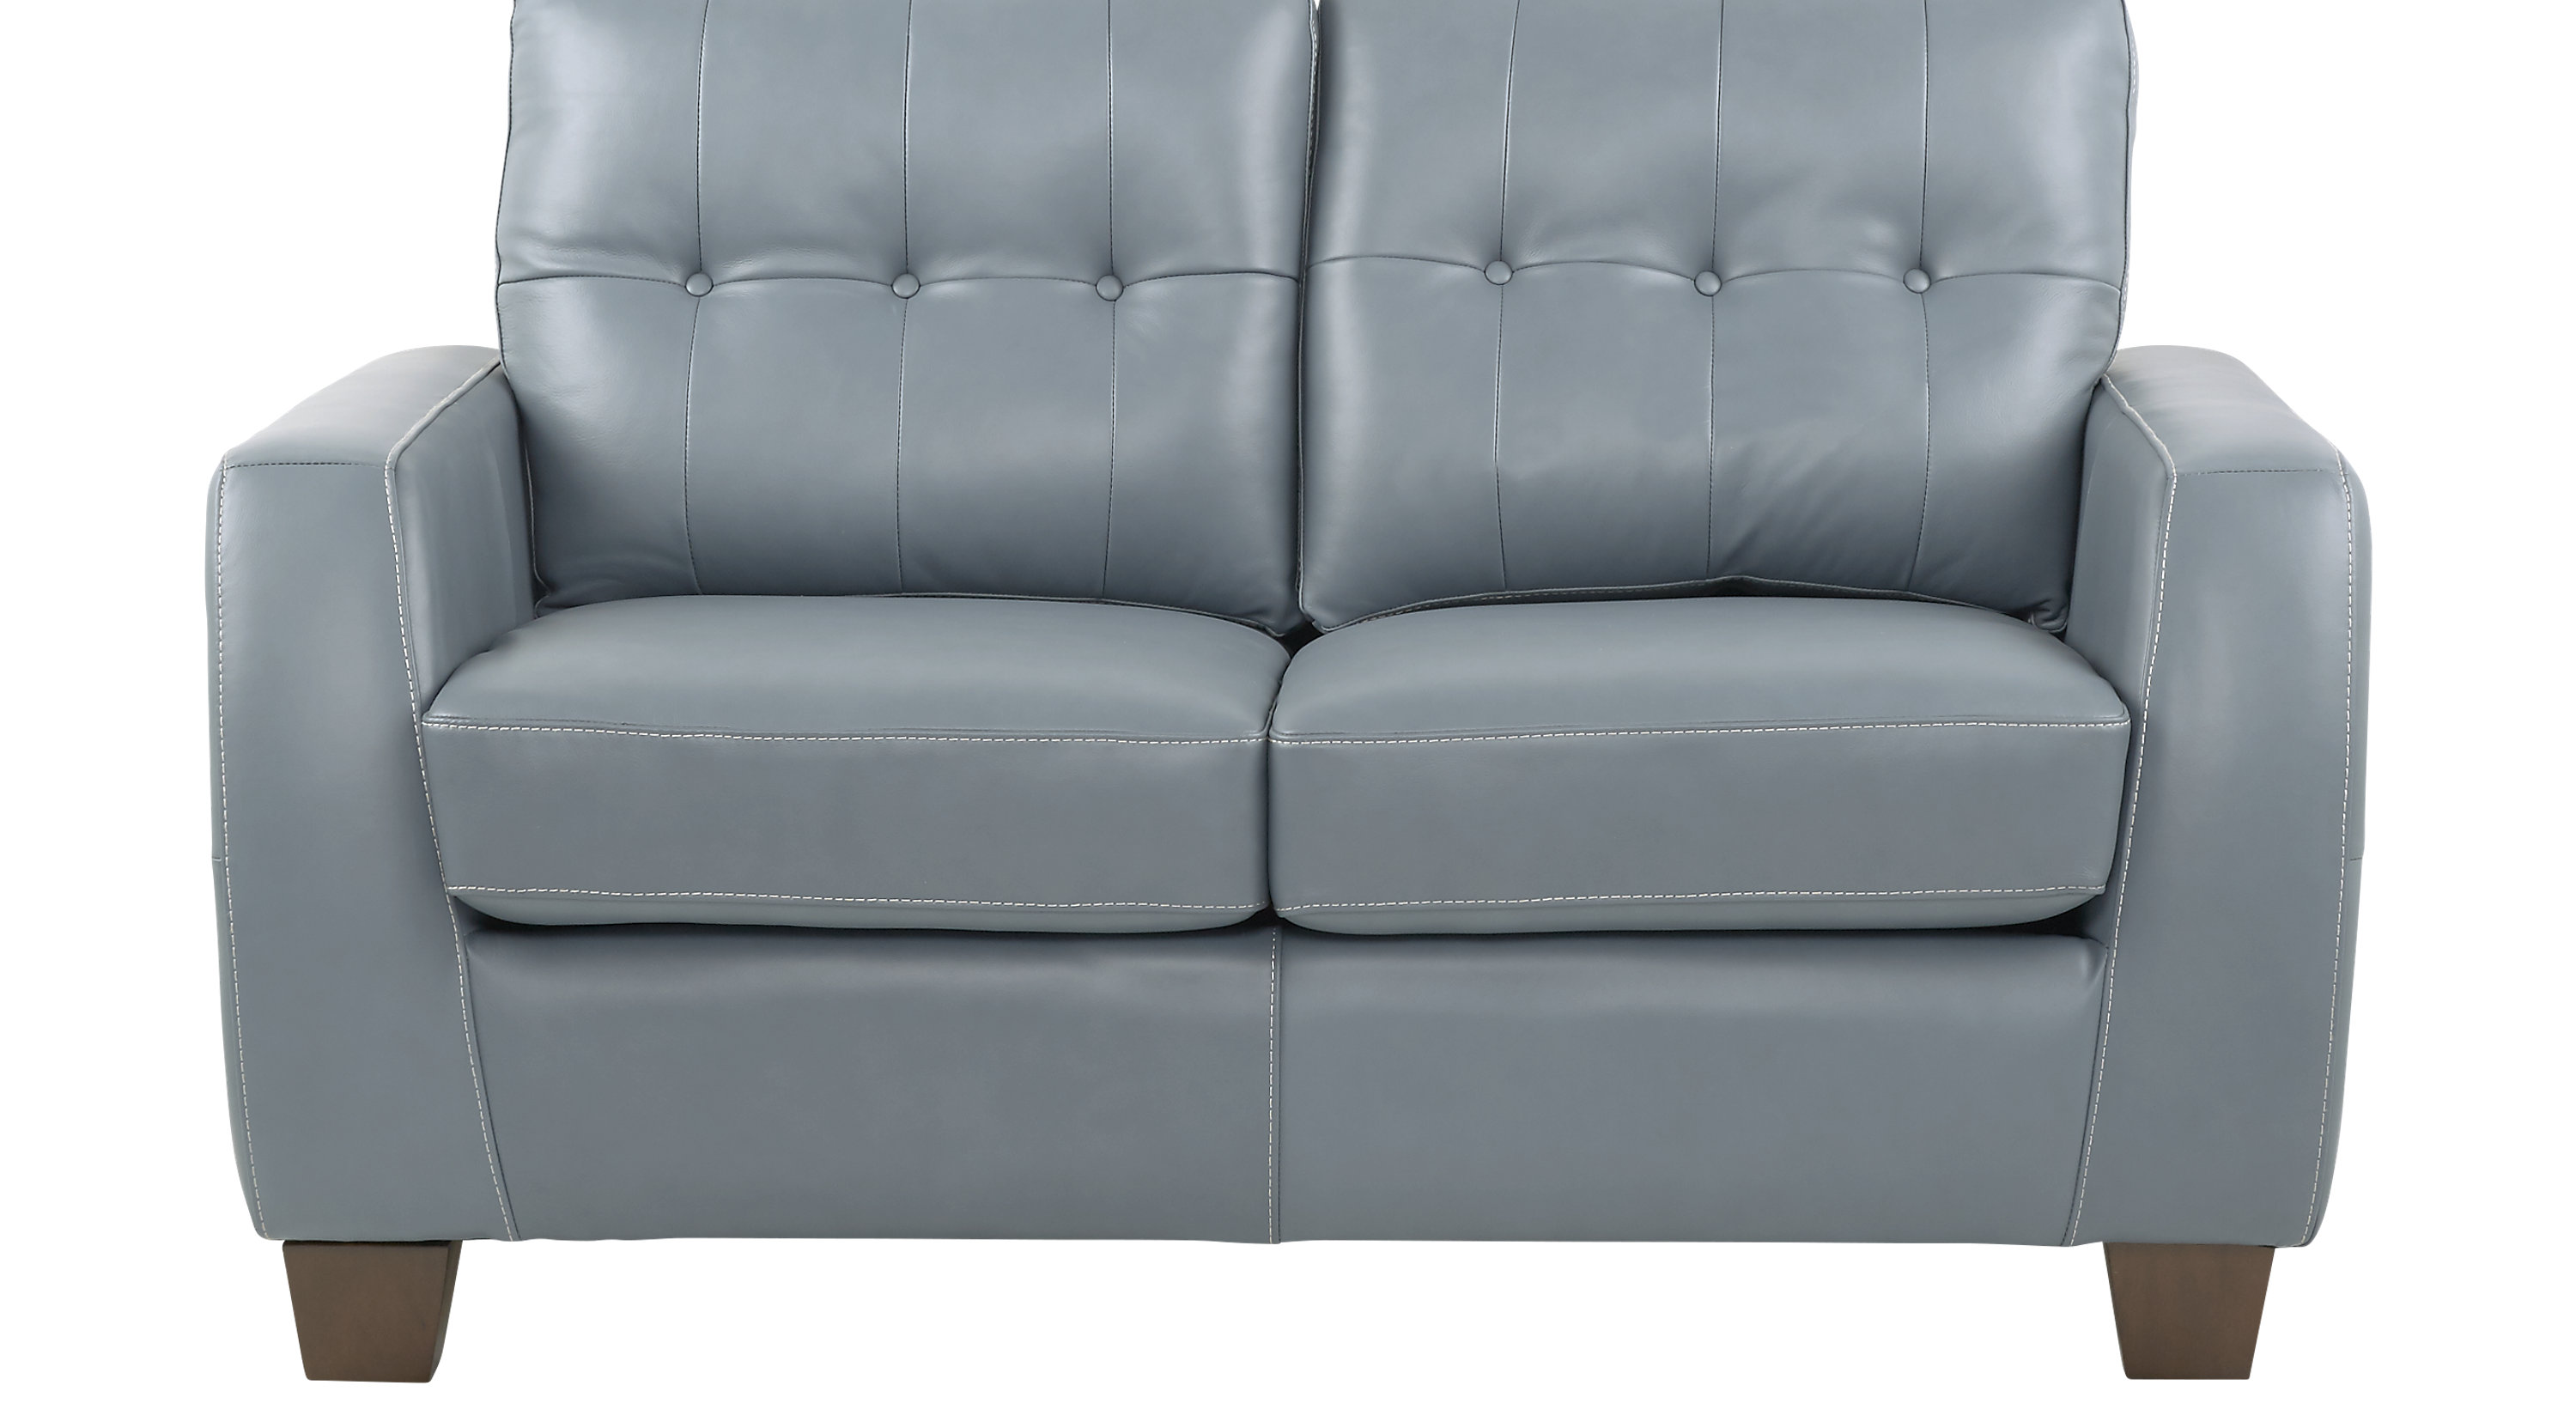 $779.99 - Santoro Ocean (blue) Leather Loveseat - Classic